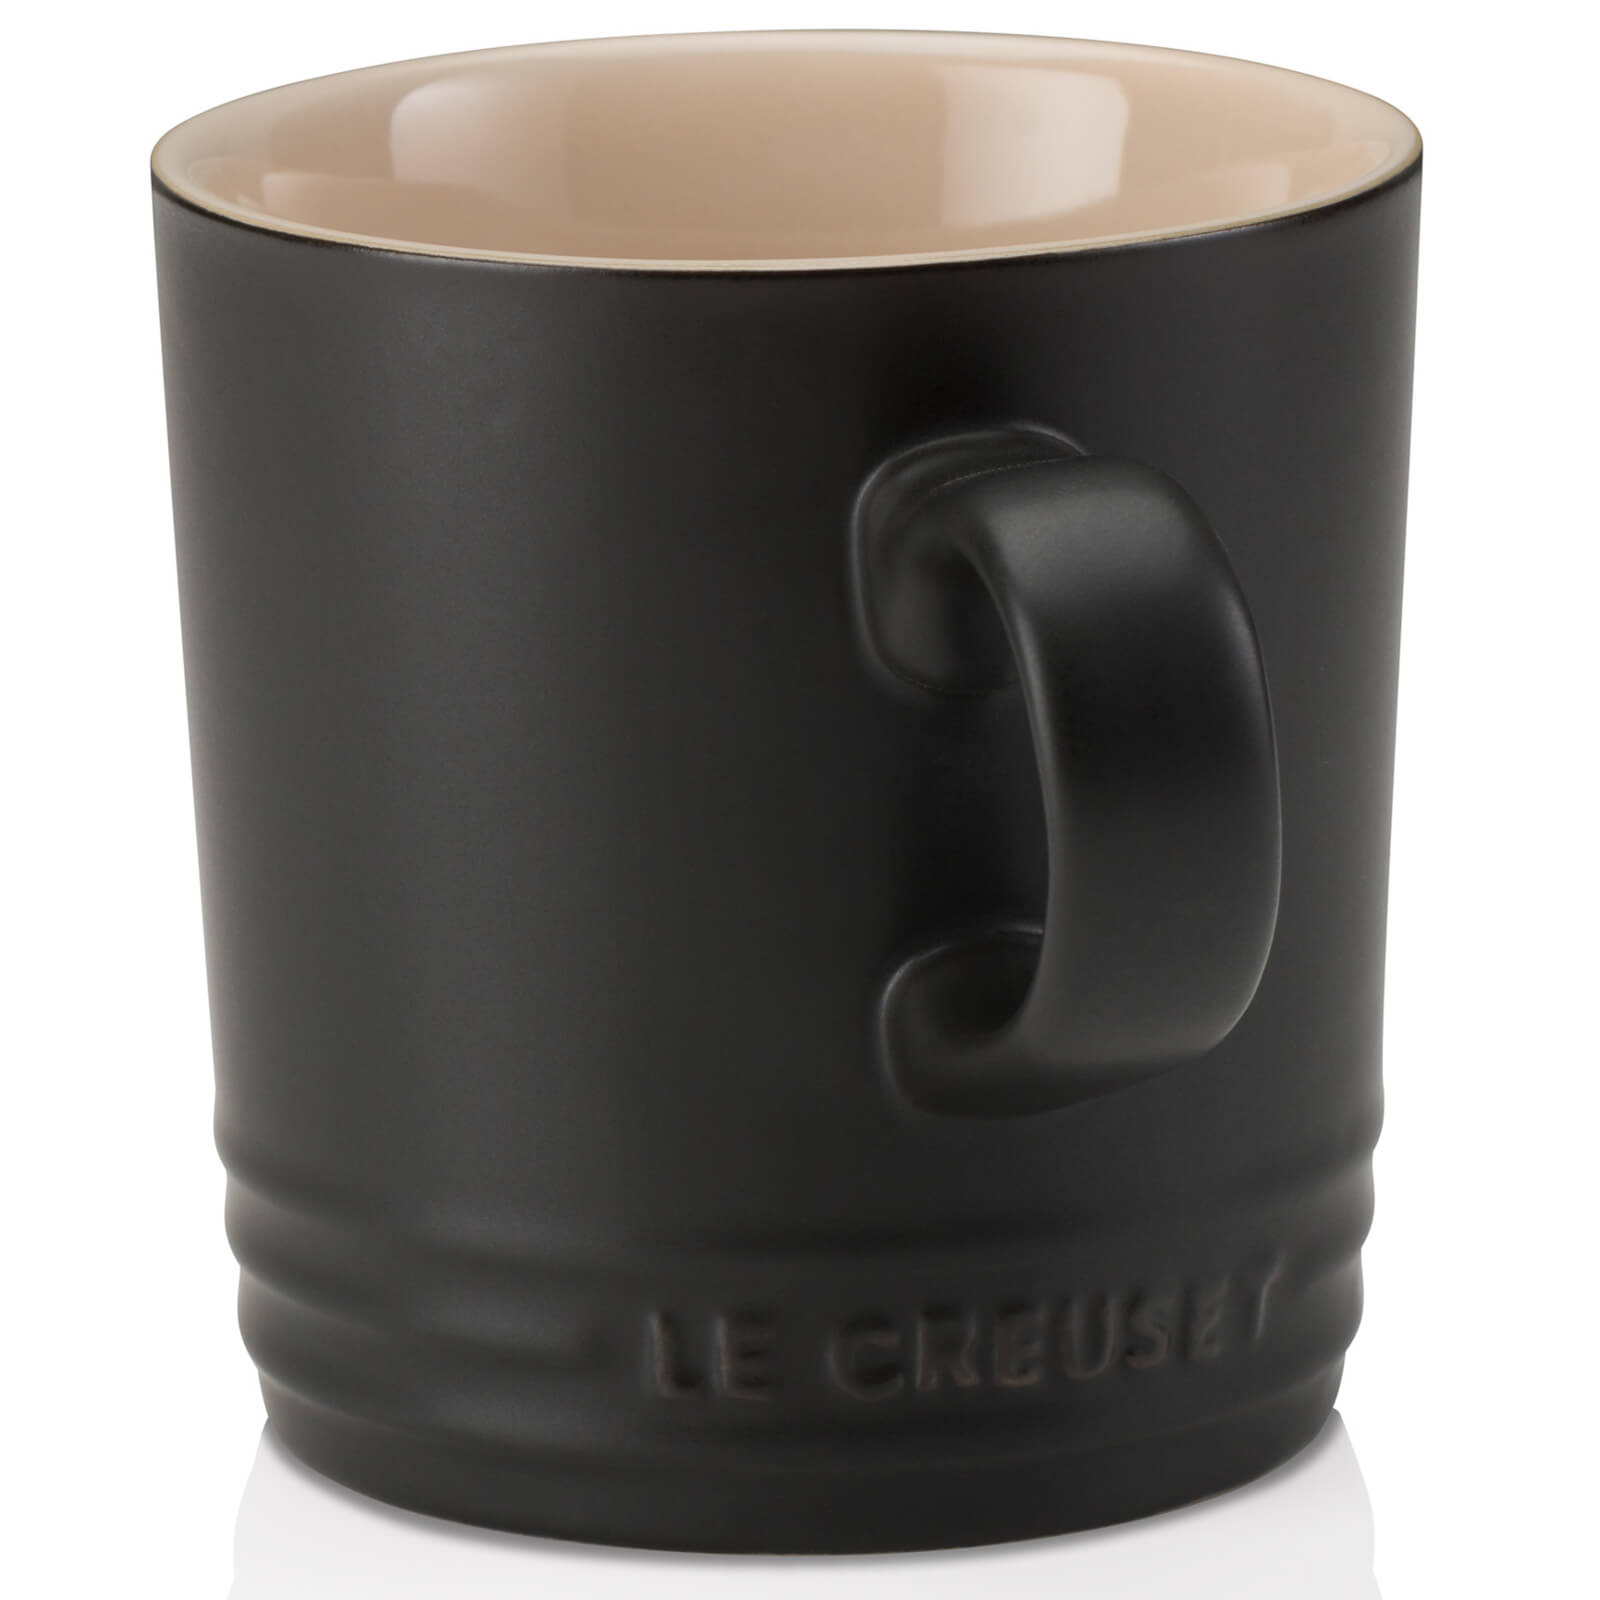 Le Creuset Stoneware Mug, 350ml - Satin Black